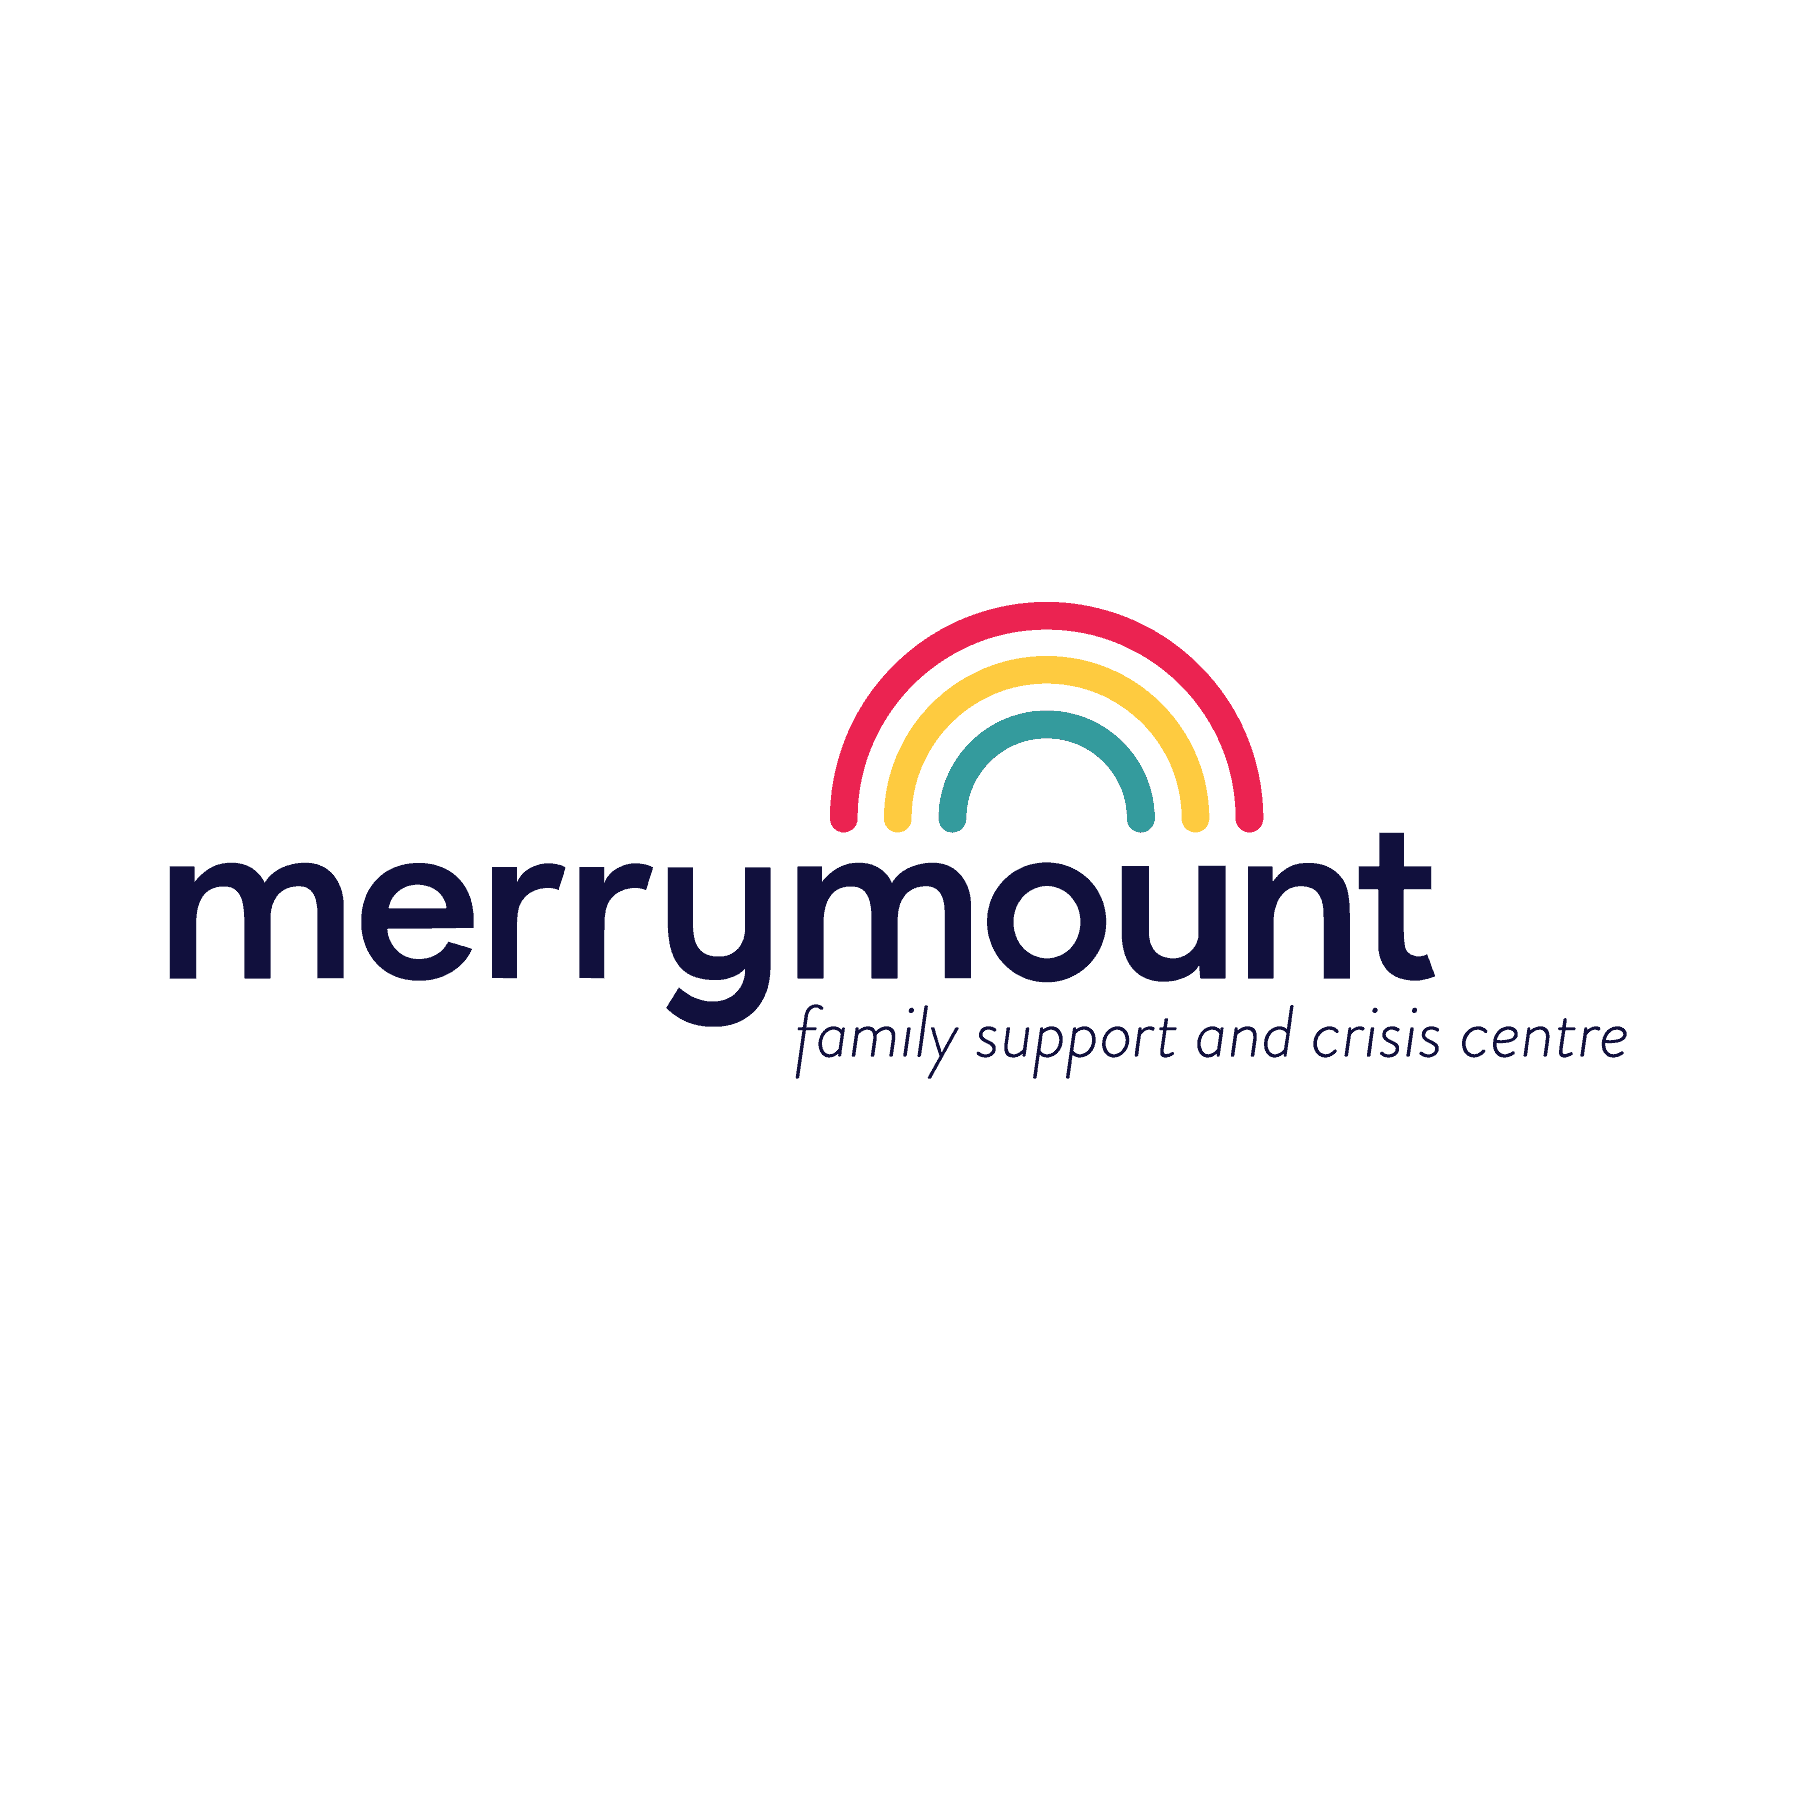 Merrymount-Family-Support-and-Crisis-Centre-Logo